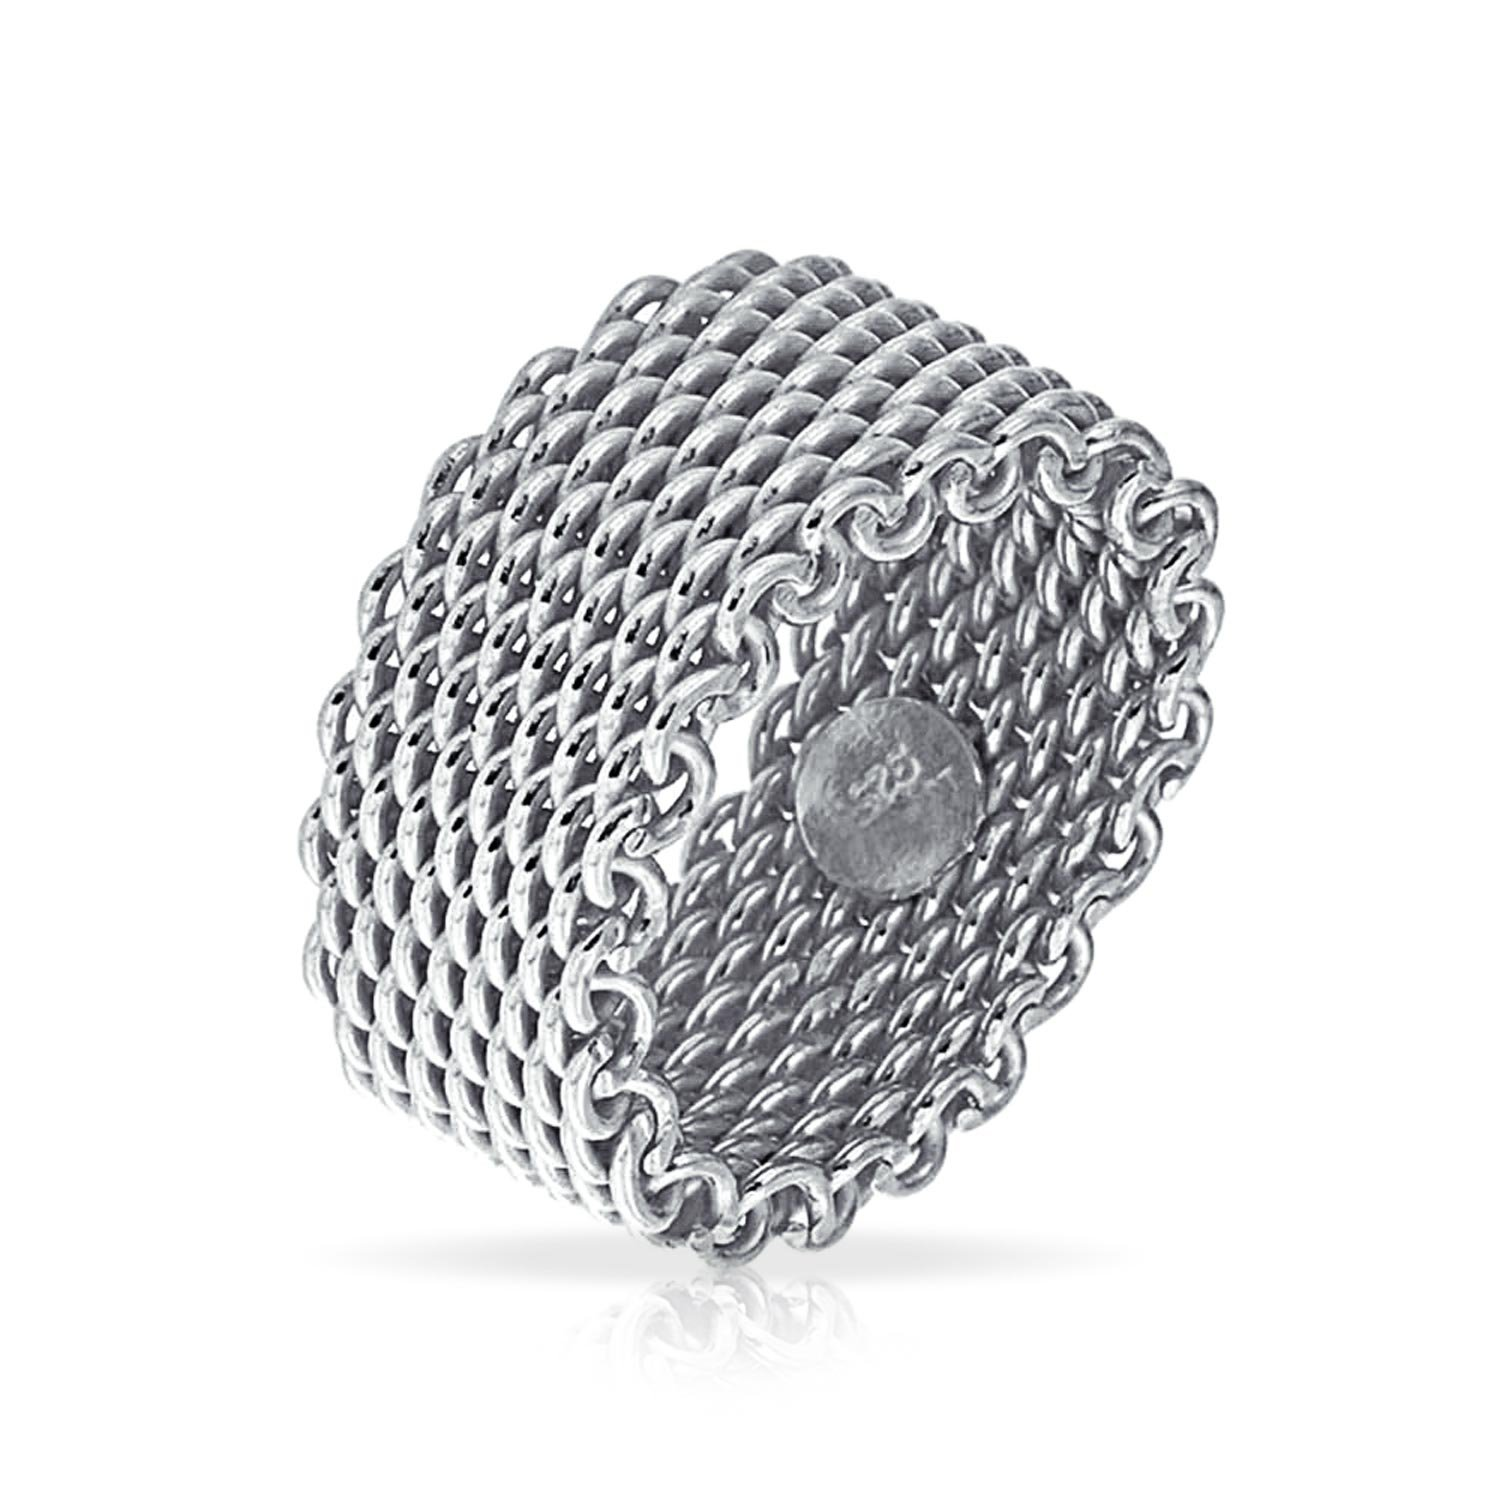 Heavy Woven Mesh Style Stelring Silver Ring